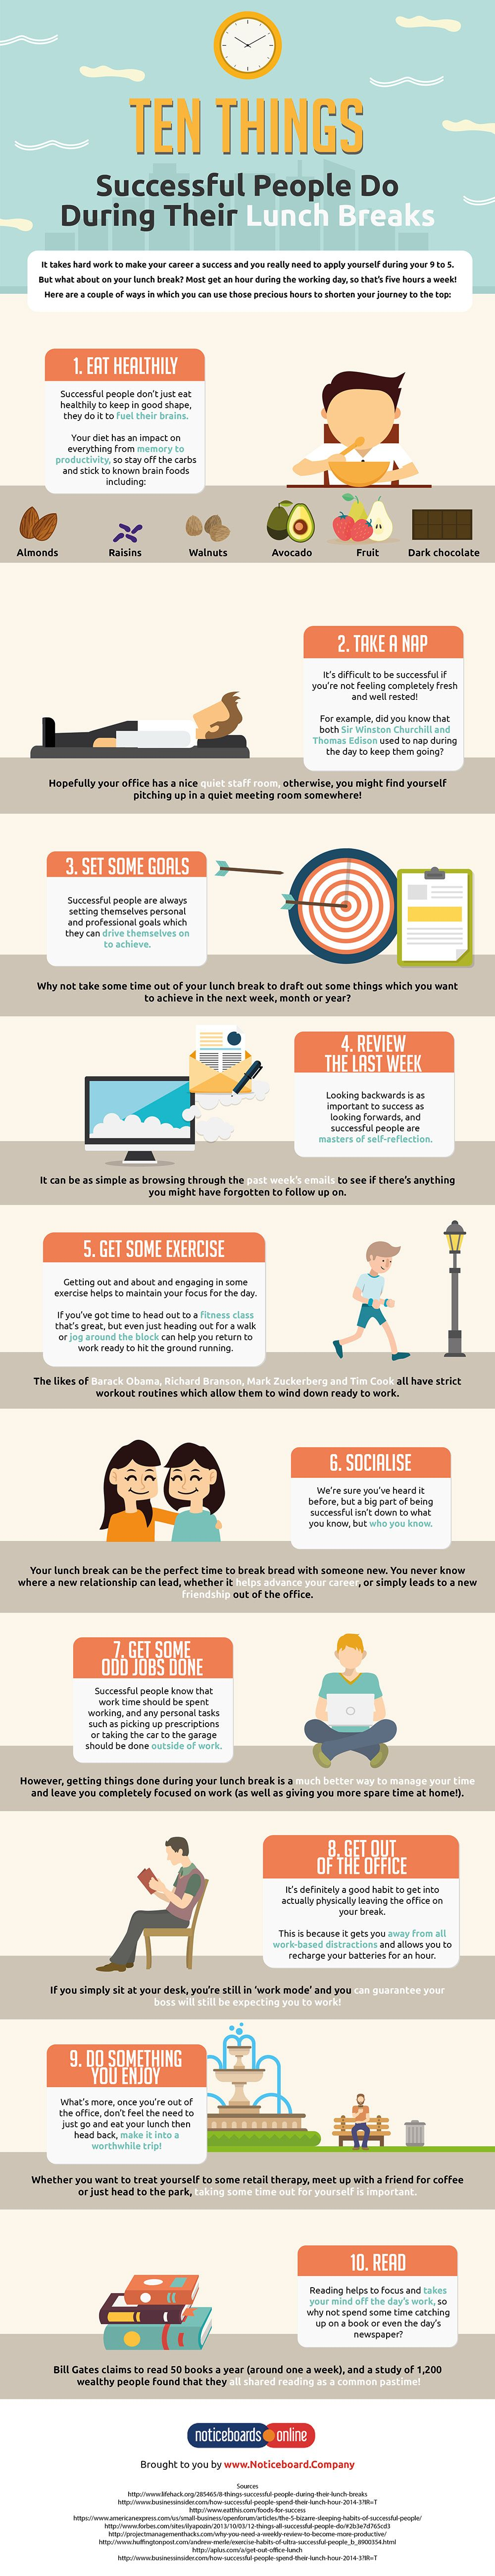 Ten Things Successful People Do During Their Lunch Breaks #Infographic